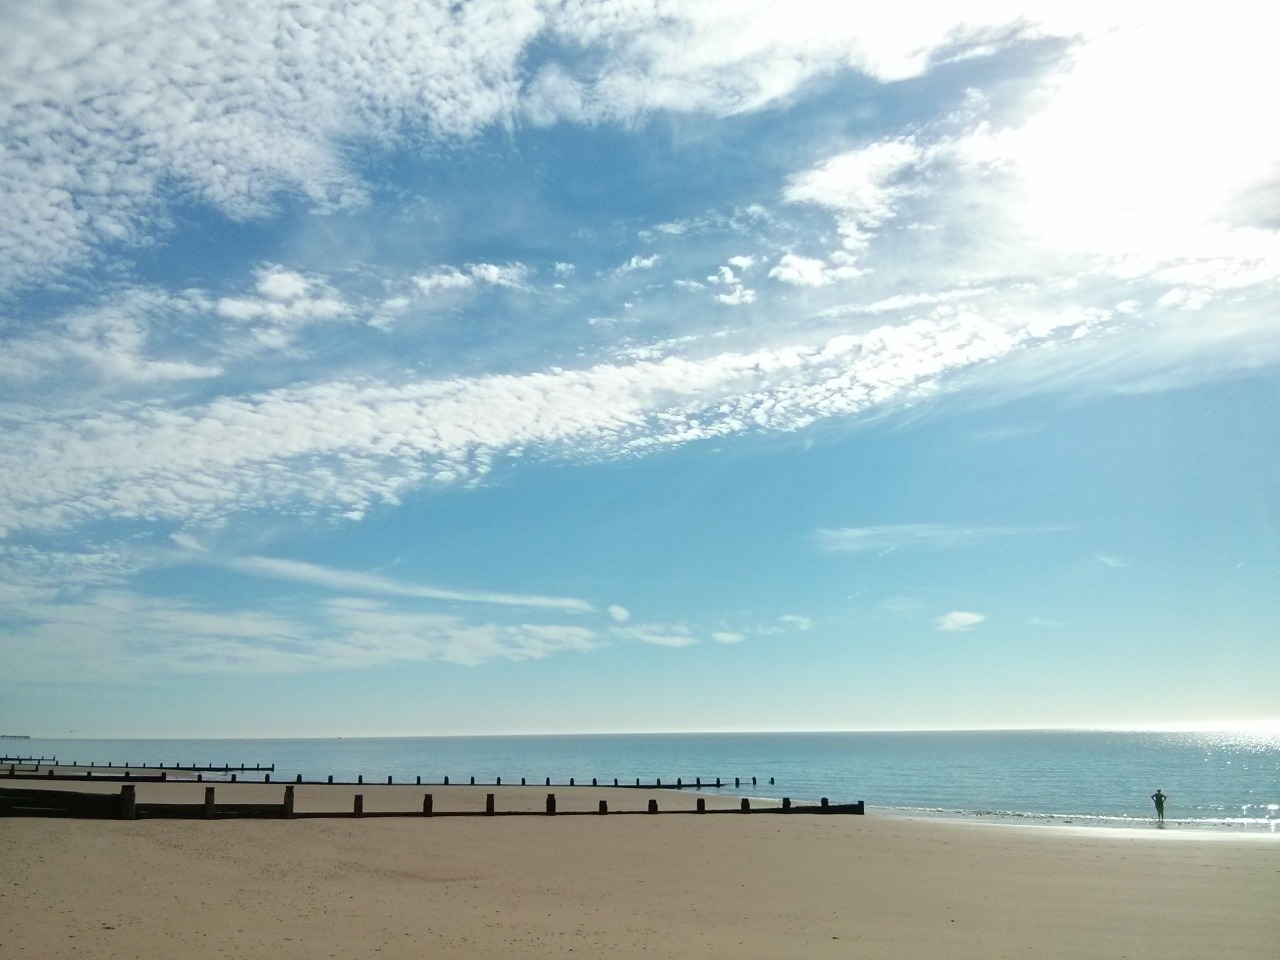 From yesterday: a fresh empty early morning Frinton beach; the start to an overwhelmingly hot and sticky day. Very thankful to live near the coast.